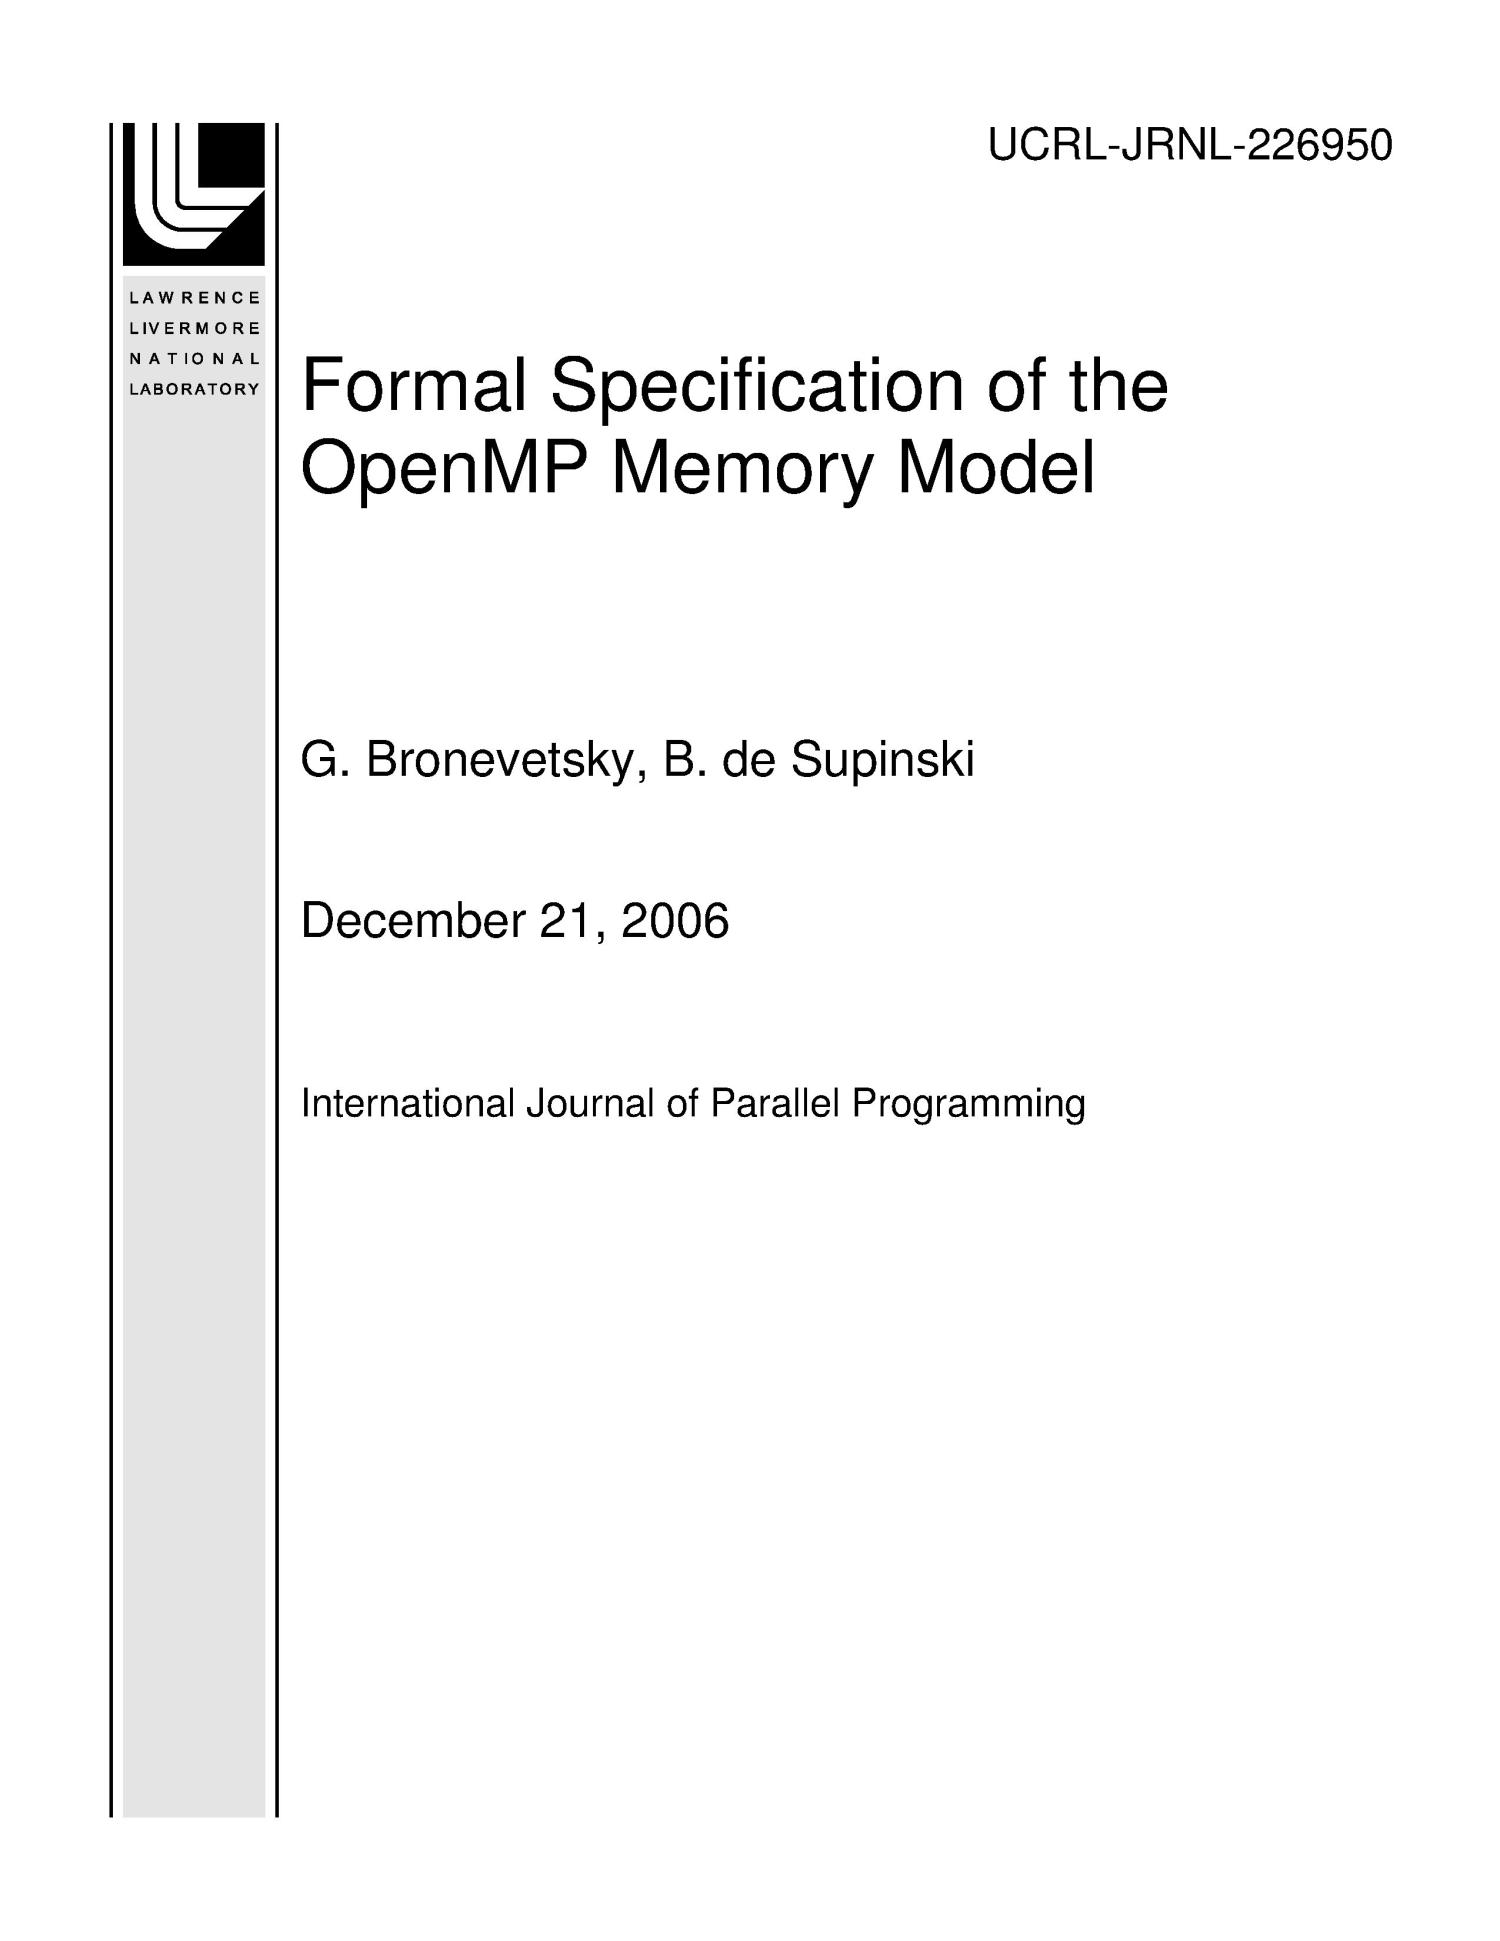 Formal Specification of the OpenMP Memory Model                                                                                                      [Sequence #]: 1 of 41